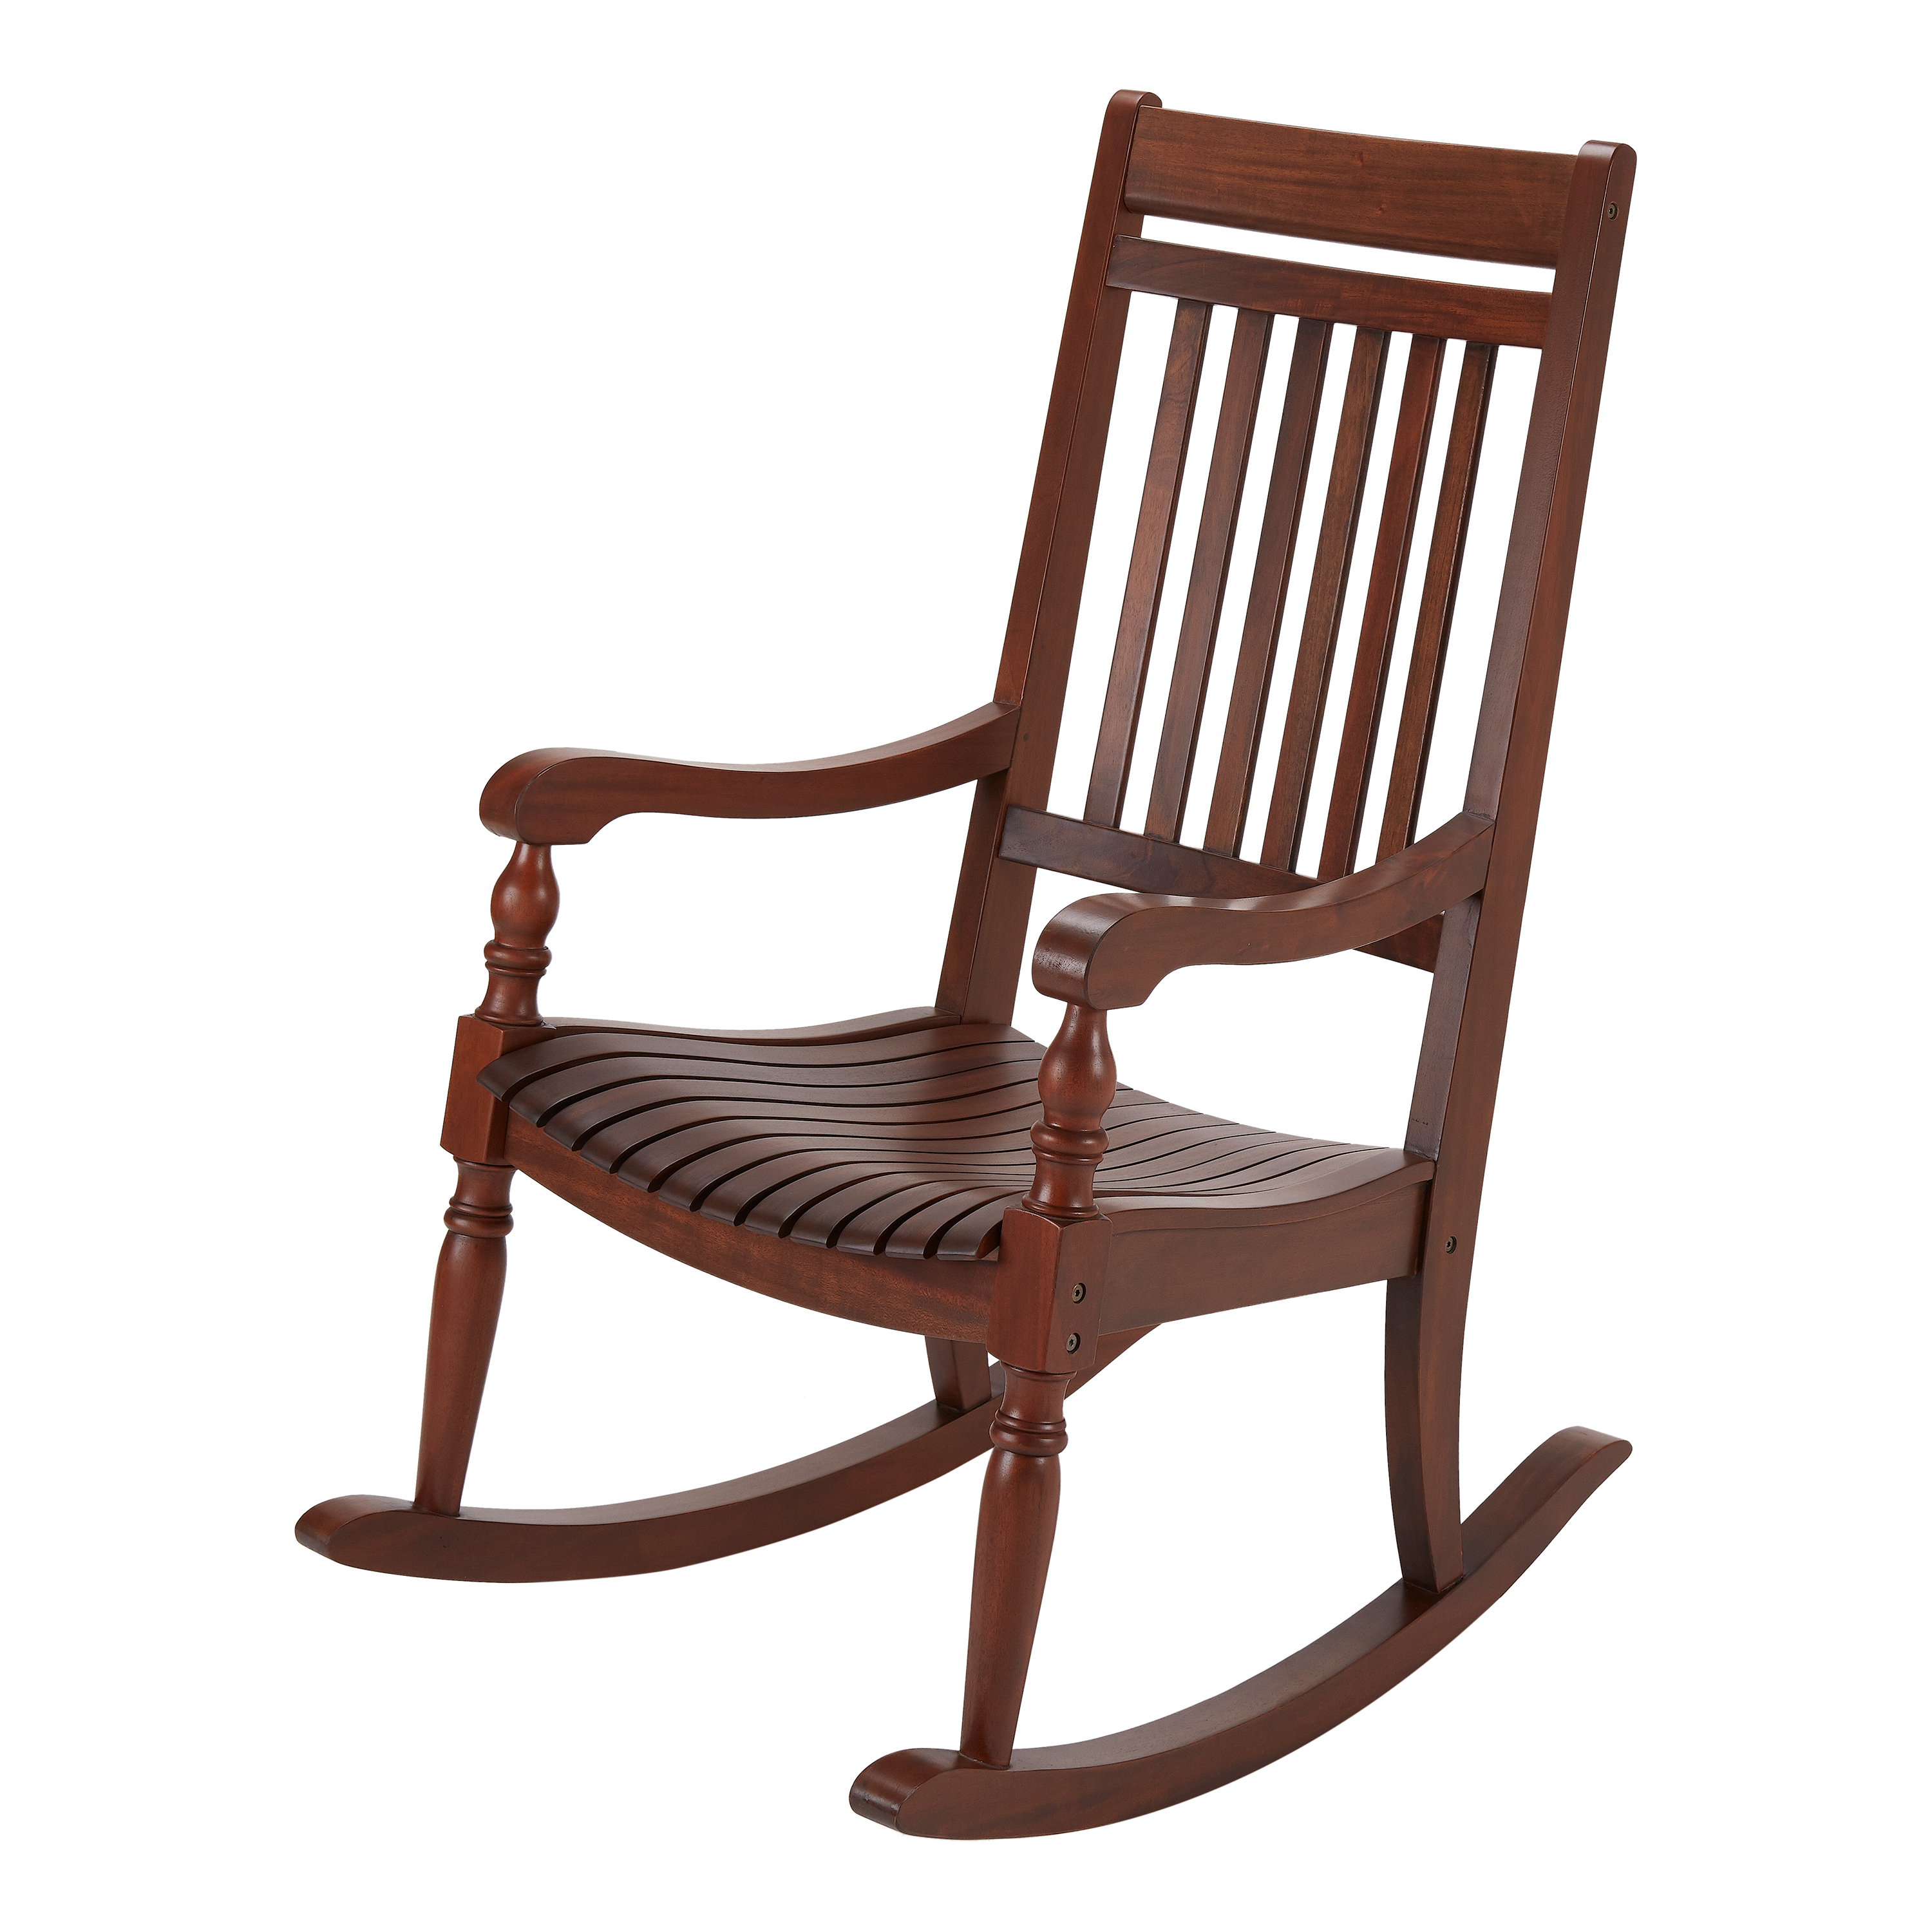 Better Homes & Gardens Ridgely Slat Back Mahogany Rocking Throughout Natural Brown Wood Folding Rocking Chairs (#5 of 20)